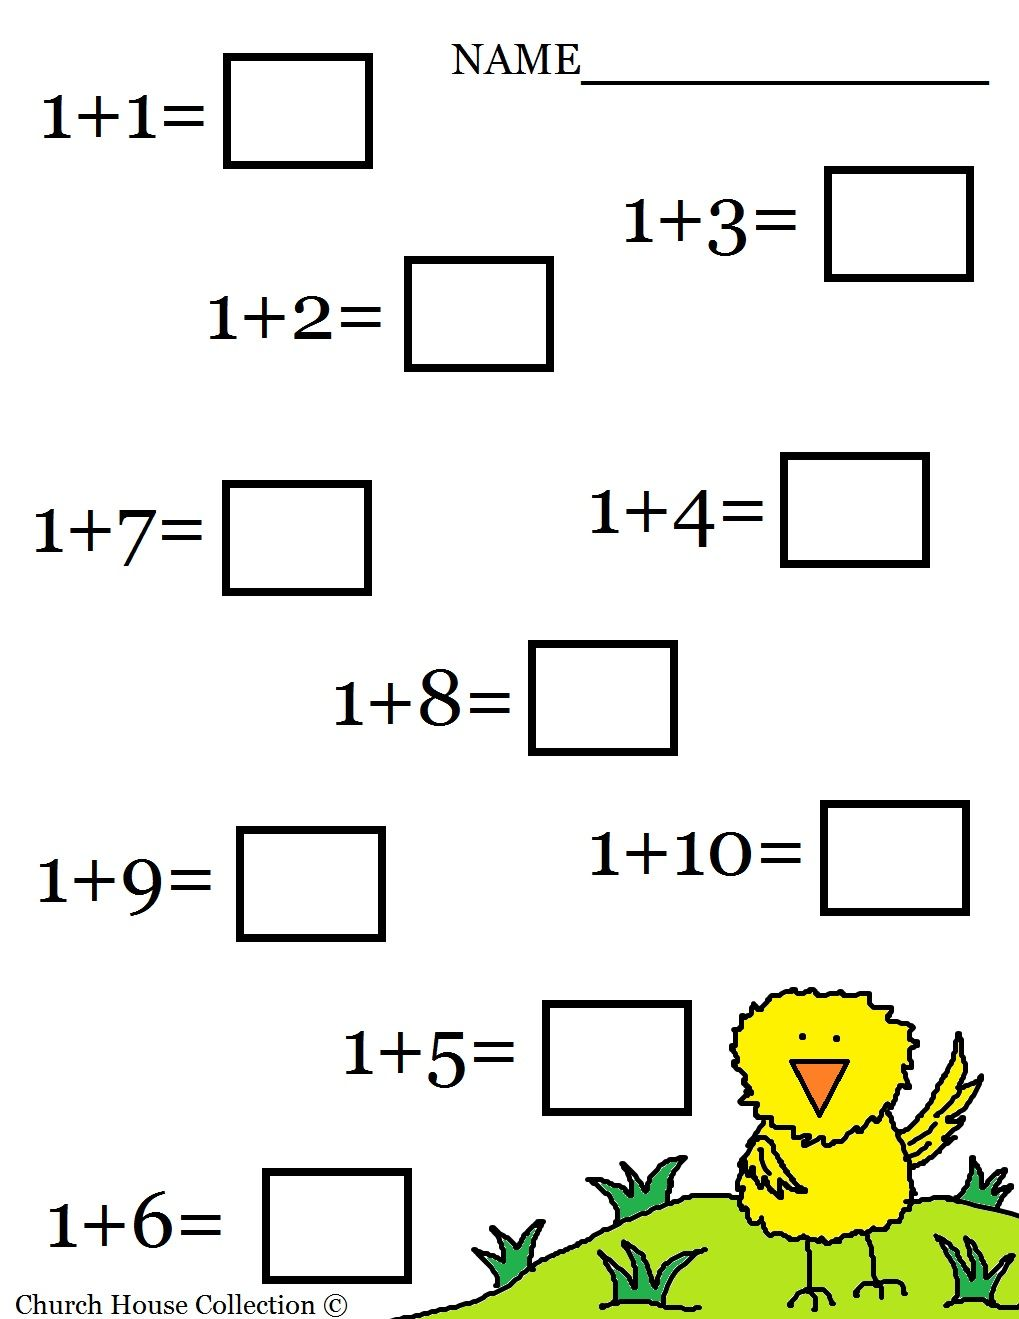 Aldiablosus  Nice  Images About Worksheets  Math On Pinterest  Math Sheets  With Licious  Images About Worksheets  Math On Pinterest  Math Sheets Math Worksheets For Kindergarten And Simple Addition With Delectable Orm Worksheet Also Rd Grade Sentence Correction Worksheets In Addition Worksheet Jobs And Number  Worksheets For Kindergarten As Well As Kuta Free Worksheets Additionally Multiplication And Division Worksheets Year  From Pinterestcom With Aldiablosus  Licious  Images About Worksheets  Math On Pinterest  Math Sheets  With Delectable  Images About Worksheets  Math On Pinterest  Math Sheets Math Worksheets For Kindergarten And Simple Addition And Nice Orm Worksheet Also Rd Grade Sentence Correction Worksheets In Addition Worksheet Jobs From Pinterestcom